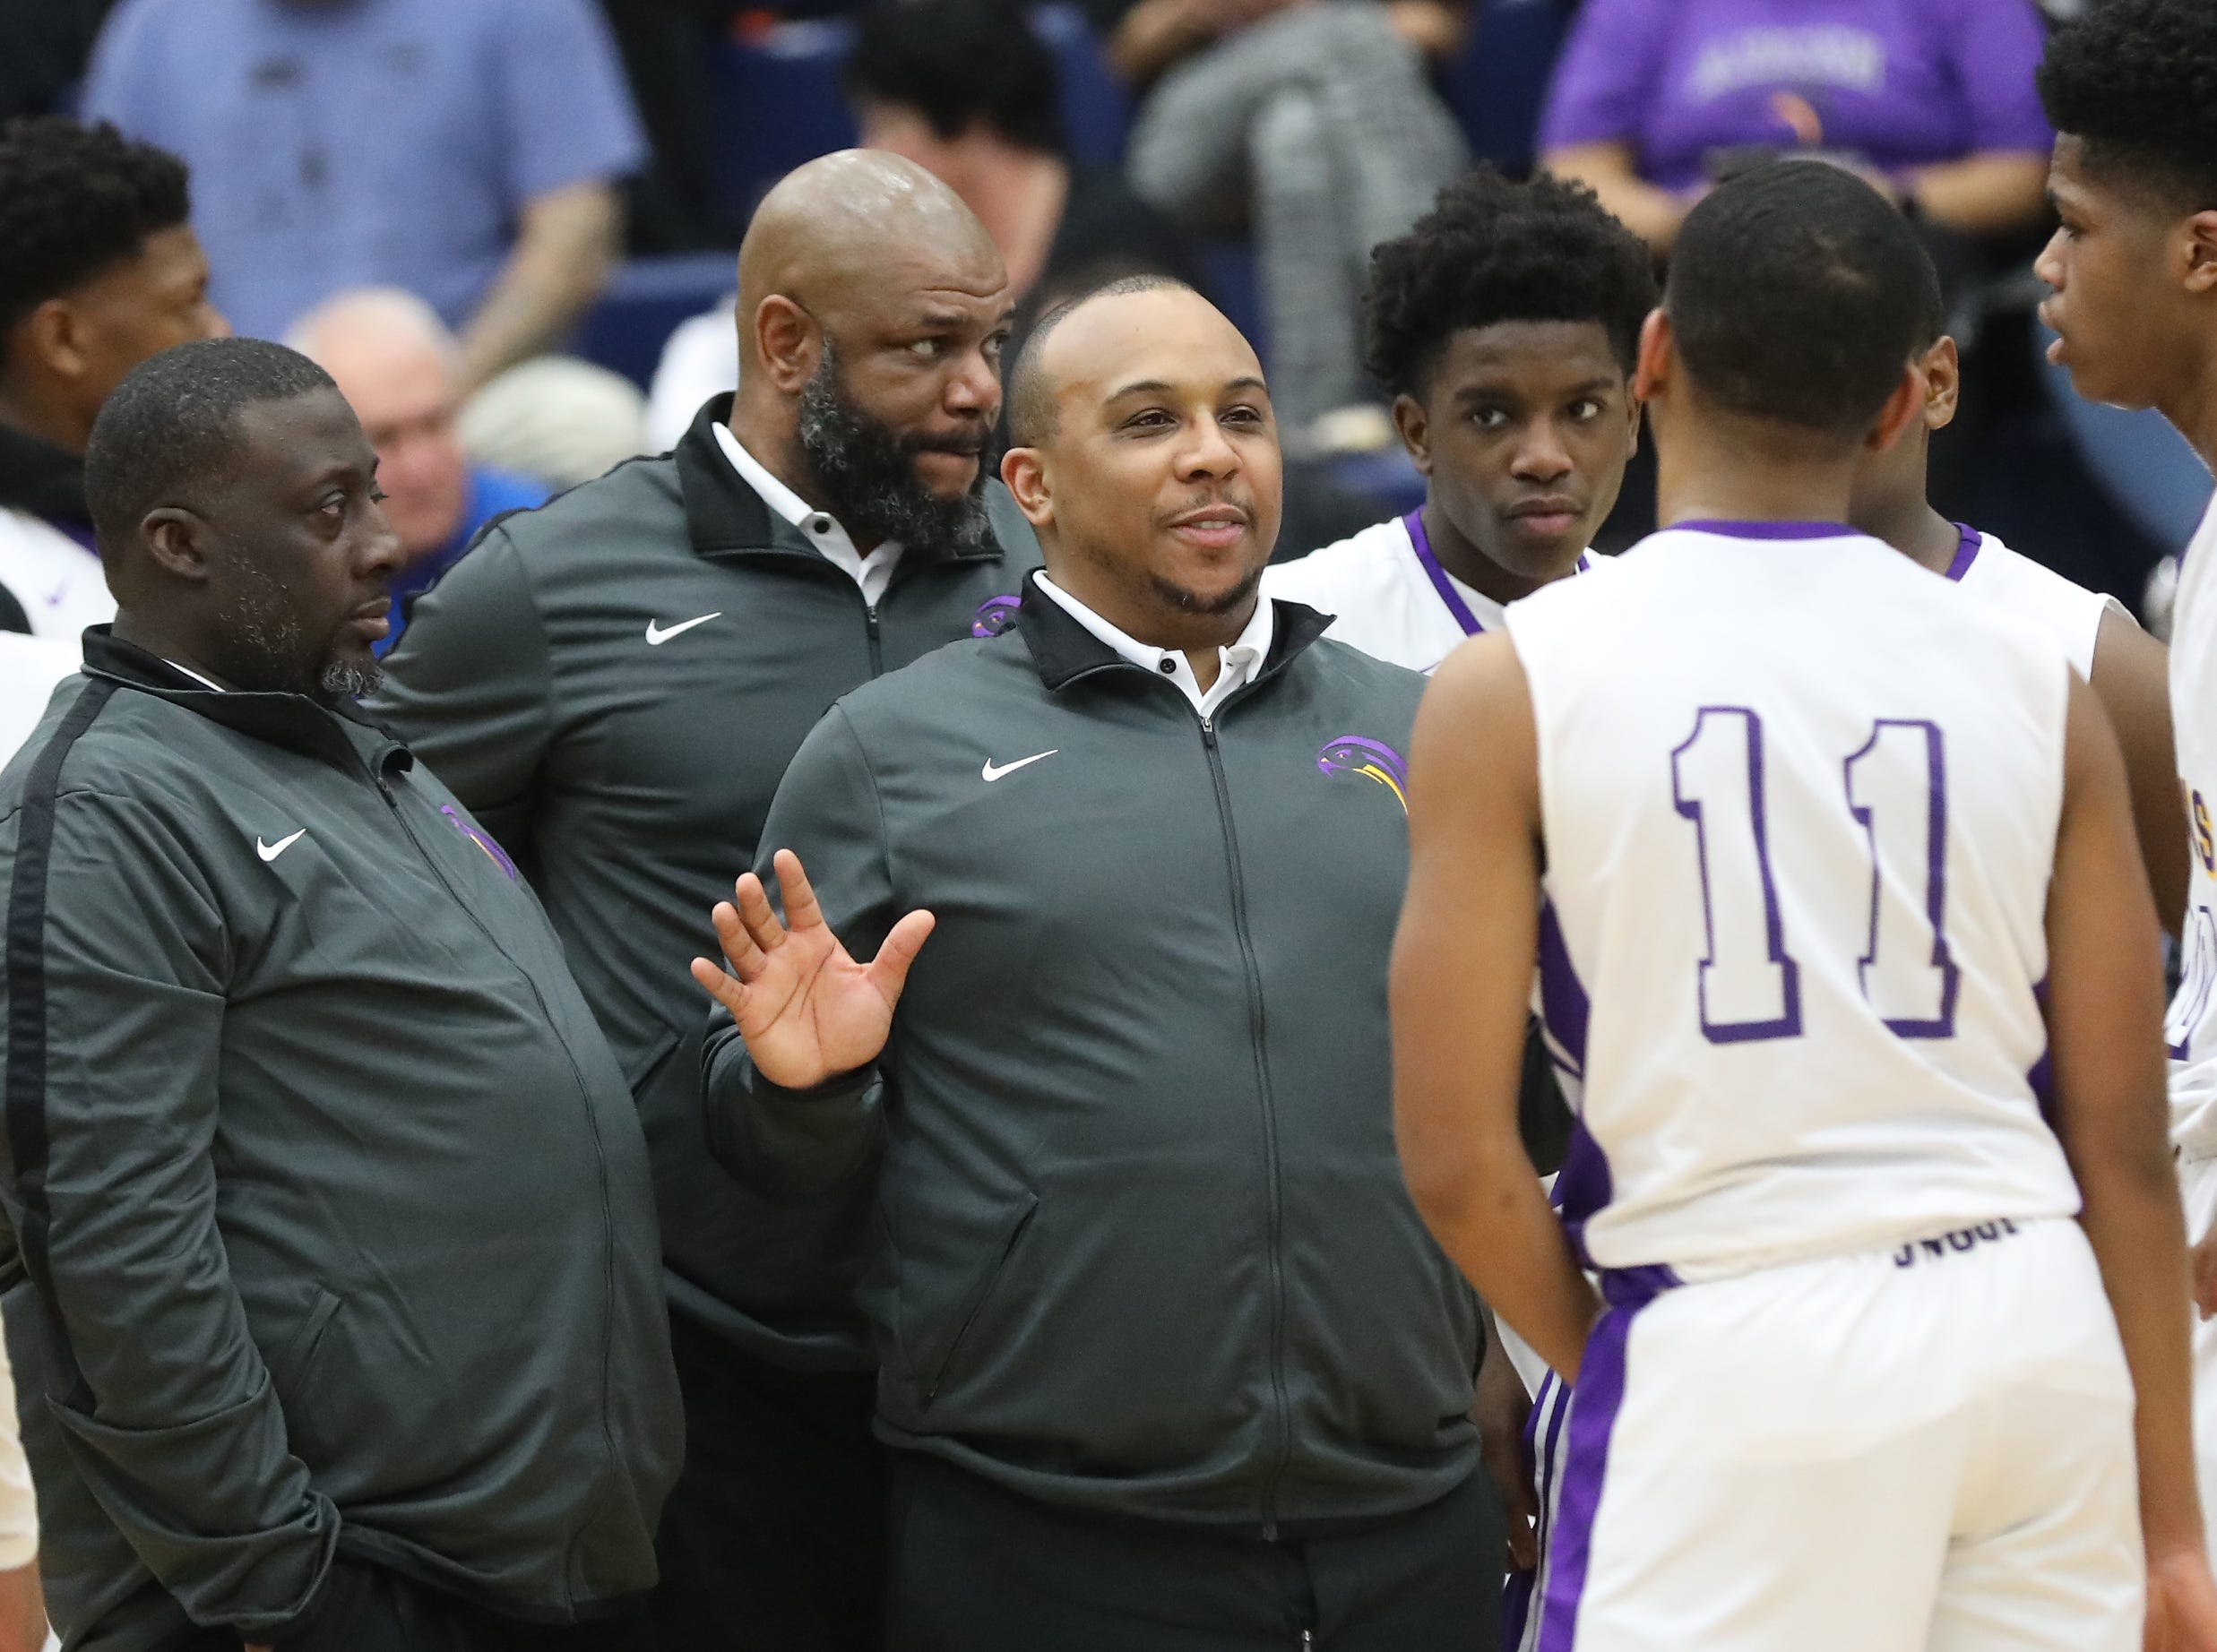 Aiken head coach Ty Cass talks to his team during the Falcons regional semifinal game against Trotwood Madison, Thursday, March 14, 2019.